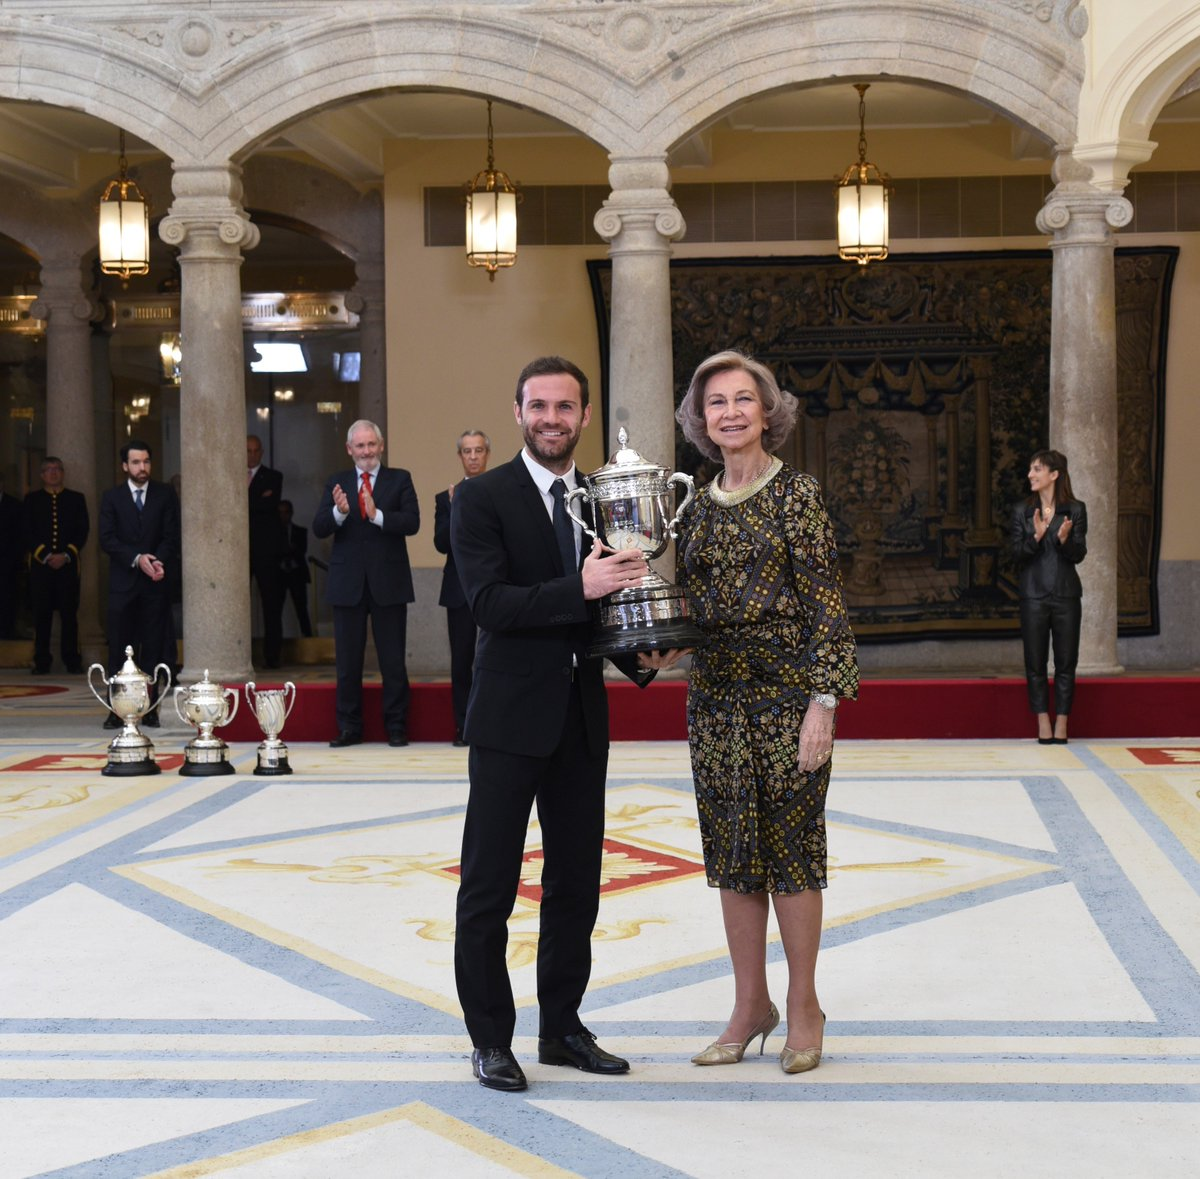 🇪🇸 Congratulations to @JuanMata8 on receiving Spain's prestigious National Award for Sport!  📸: Consejo Superior de Deportes